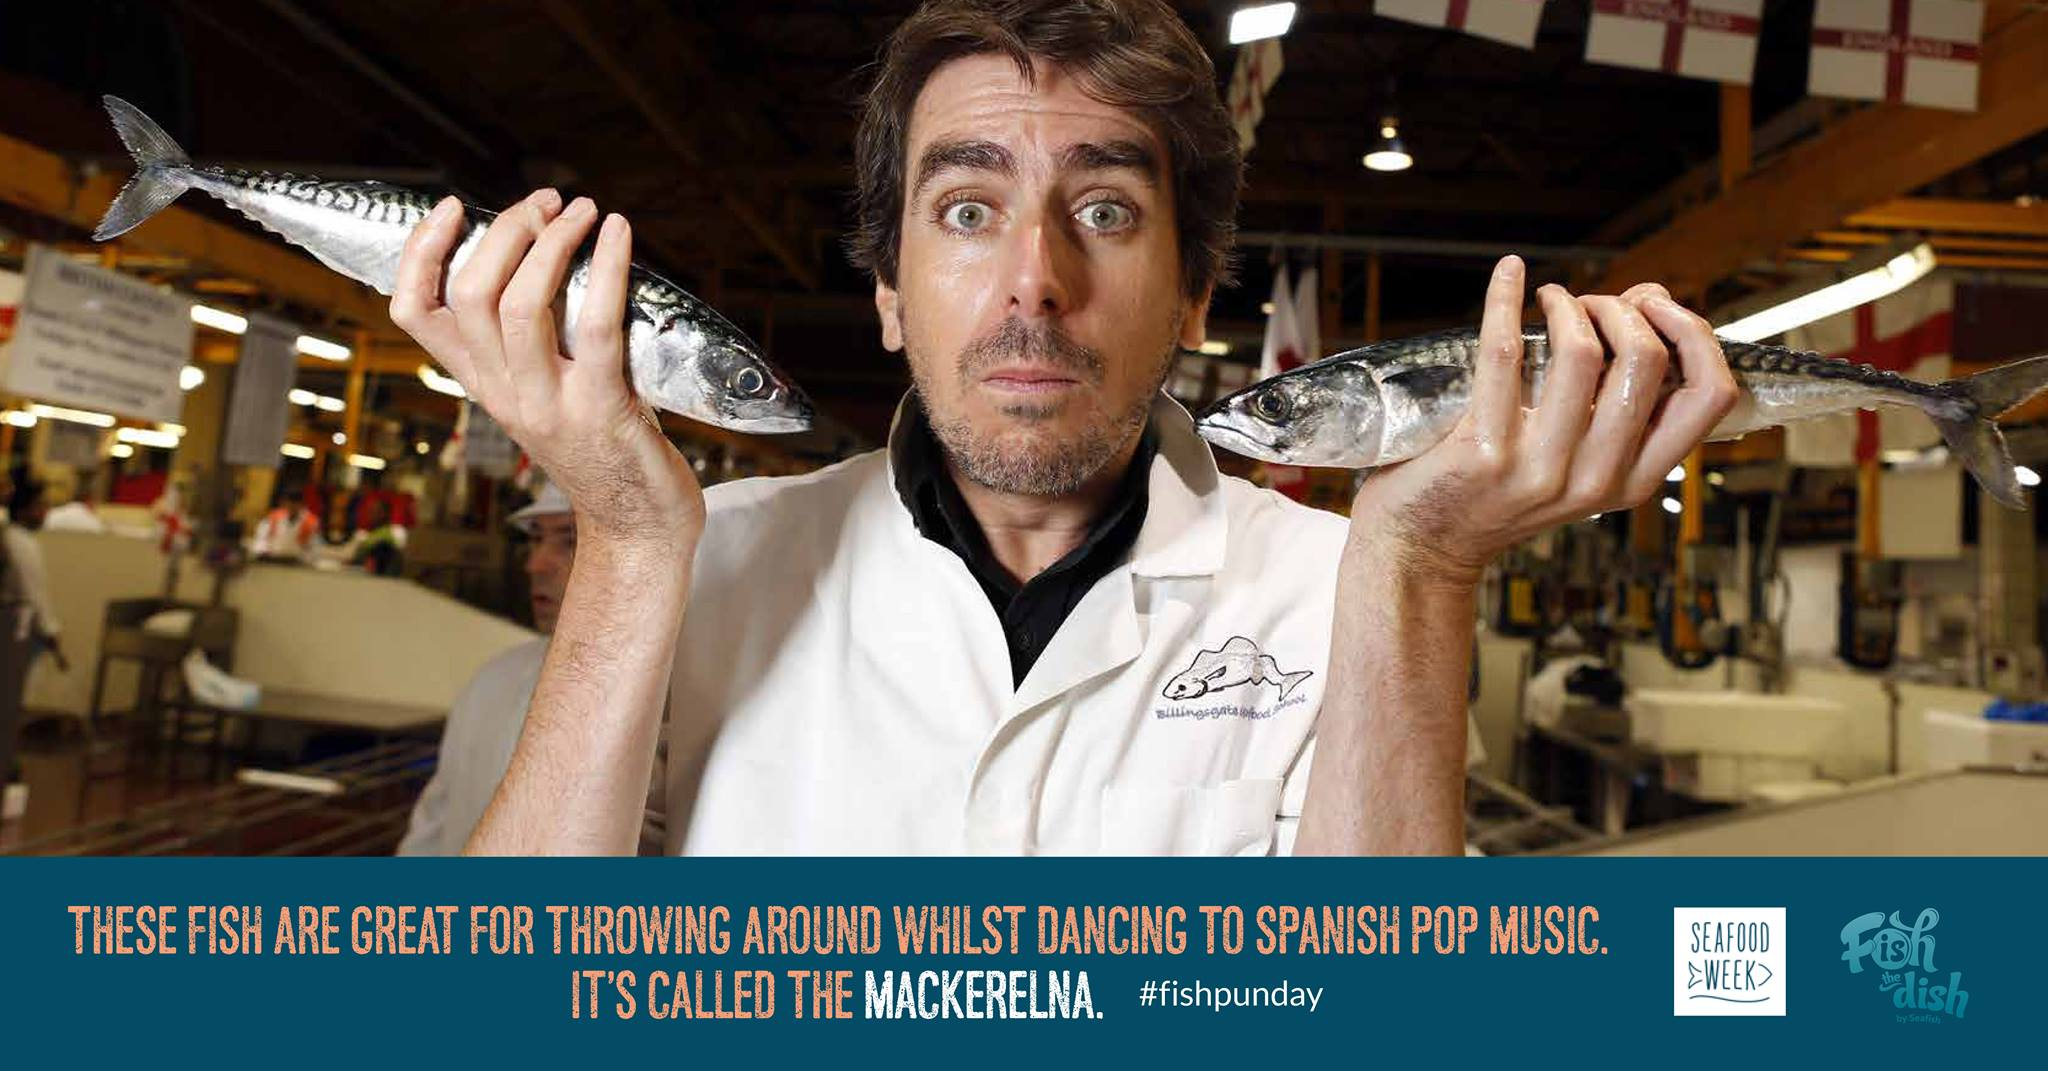 These fish are great for throwing around whilst dancing to Spanish pop music. It's called The Mackerelna